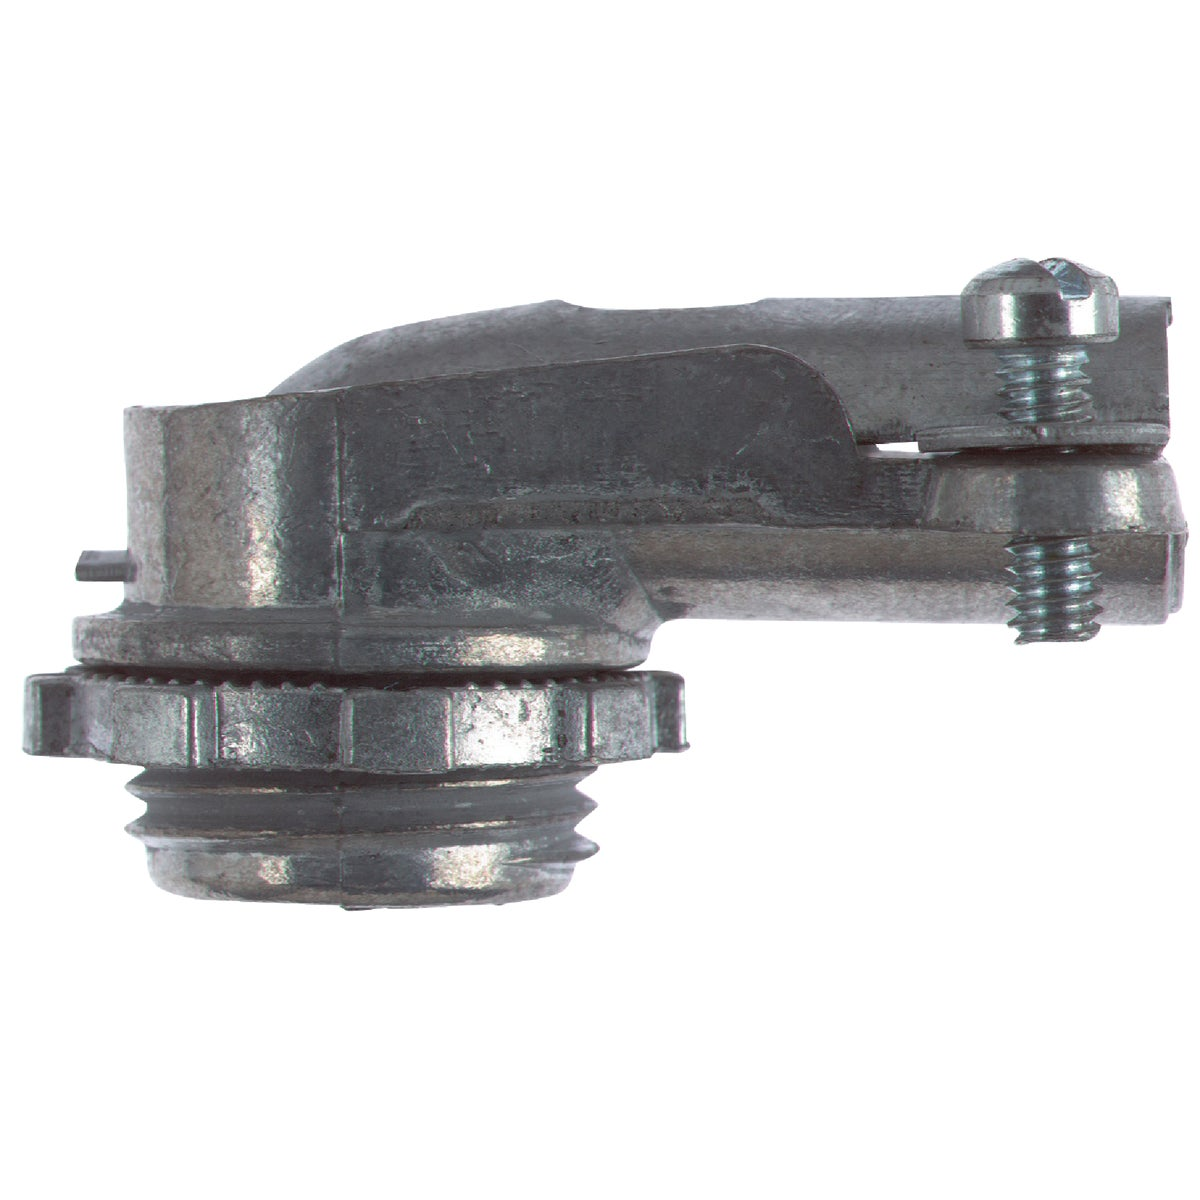 "1/2"" 90DEG CONNECTOR - XC2911 by Thomas & Betts"